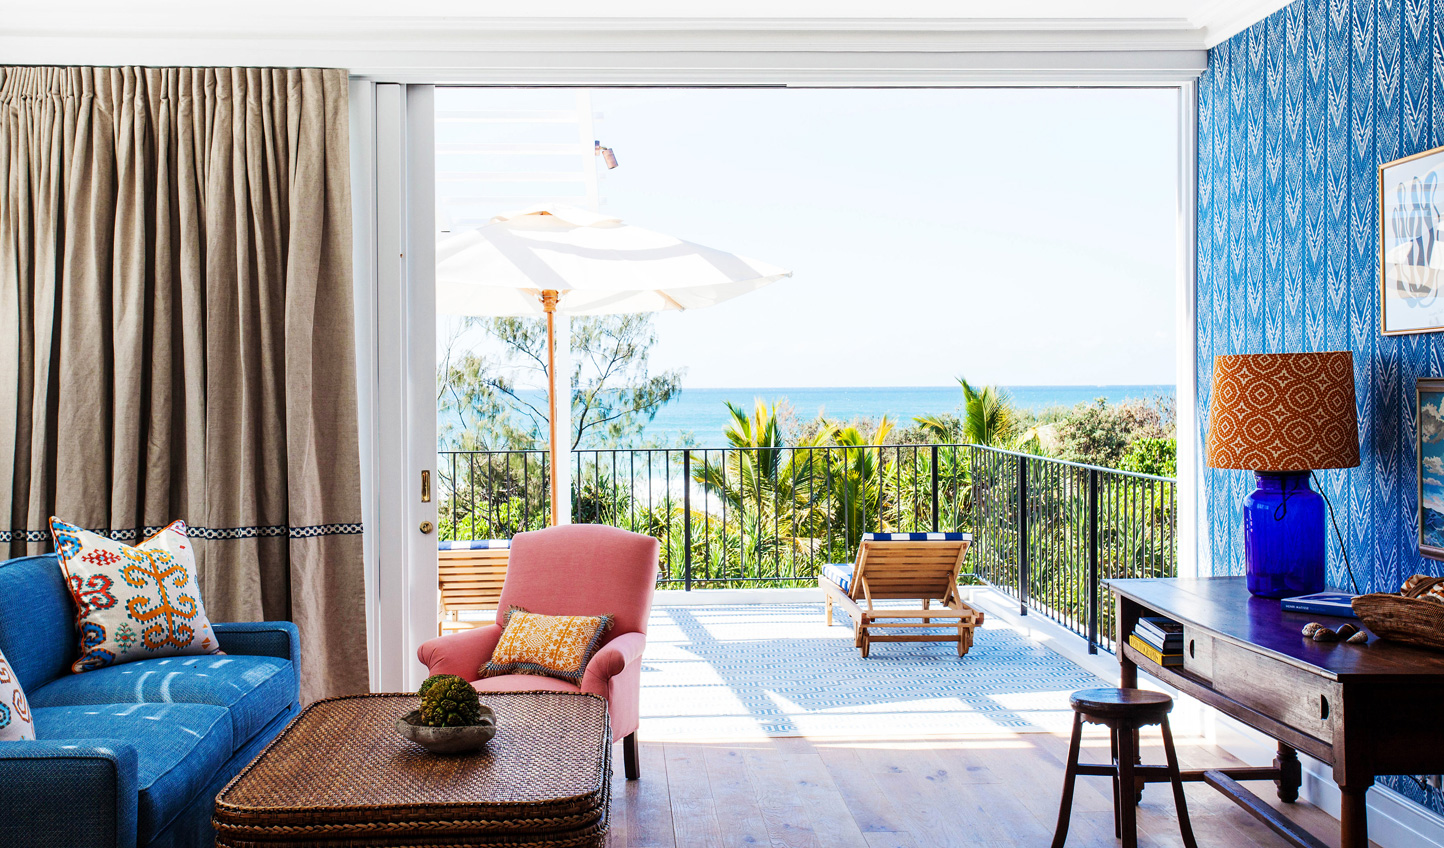 Step out onto your terrace and drink in the ocean views